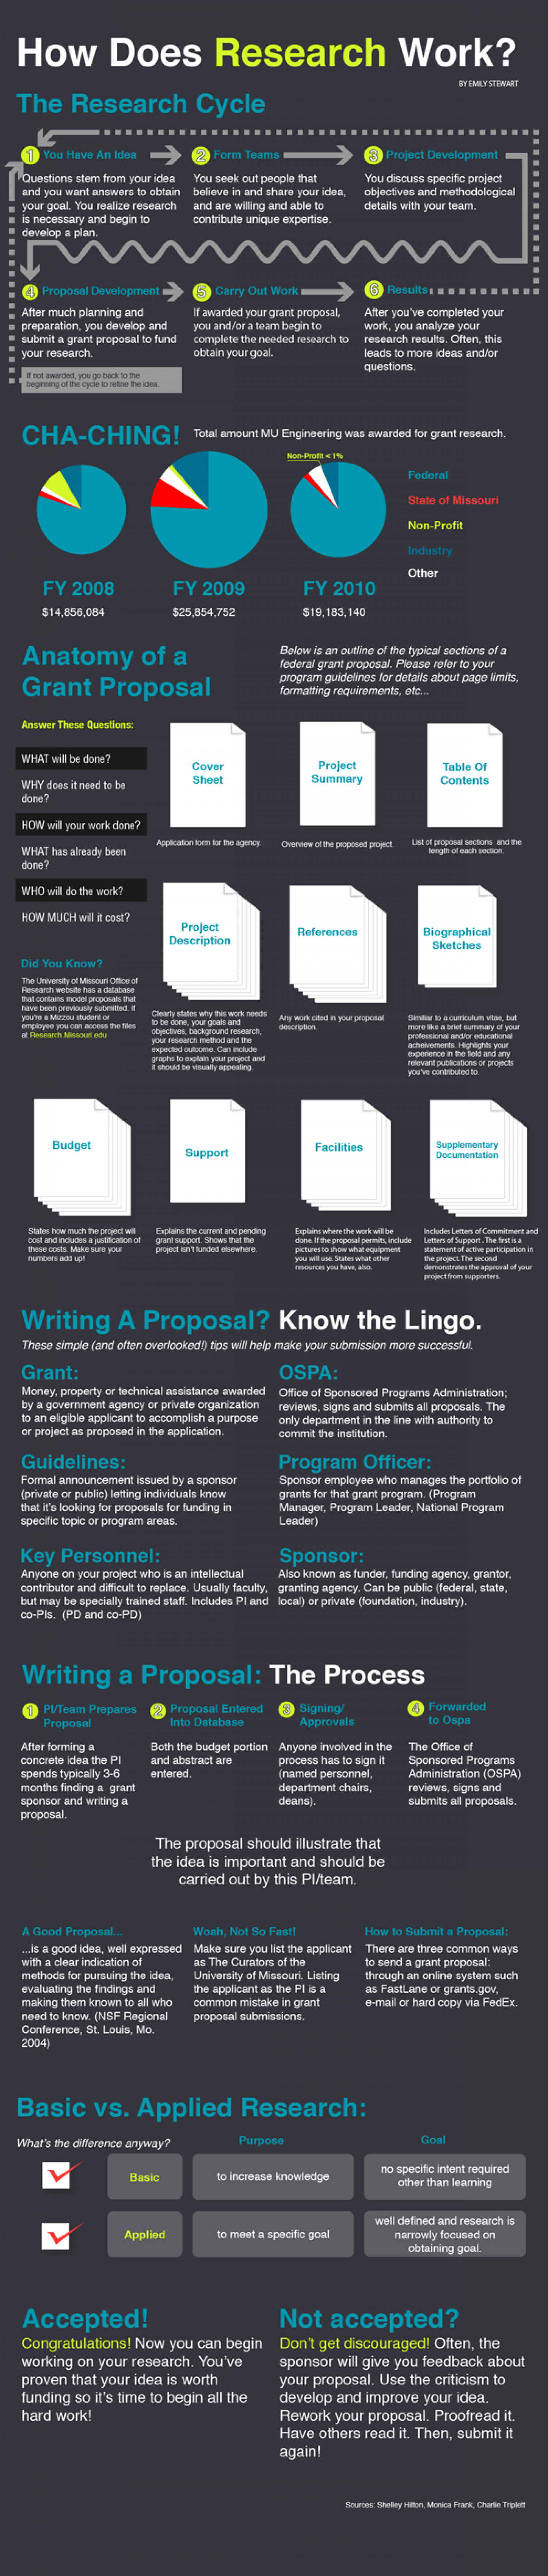 How does research work? Infographic